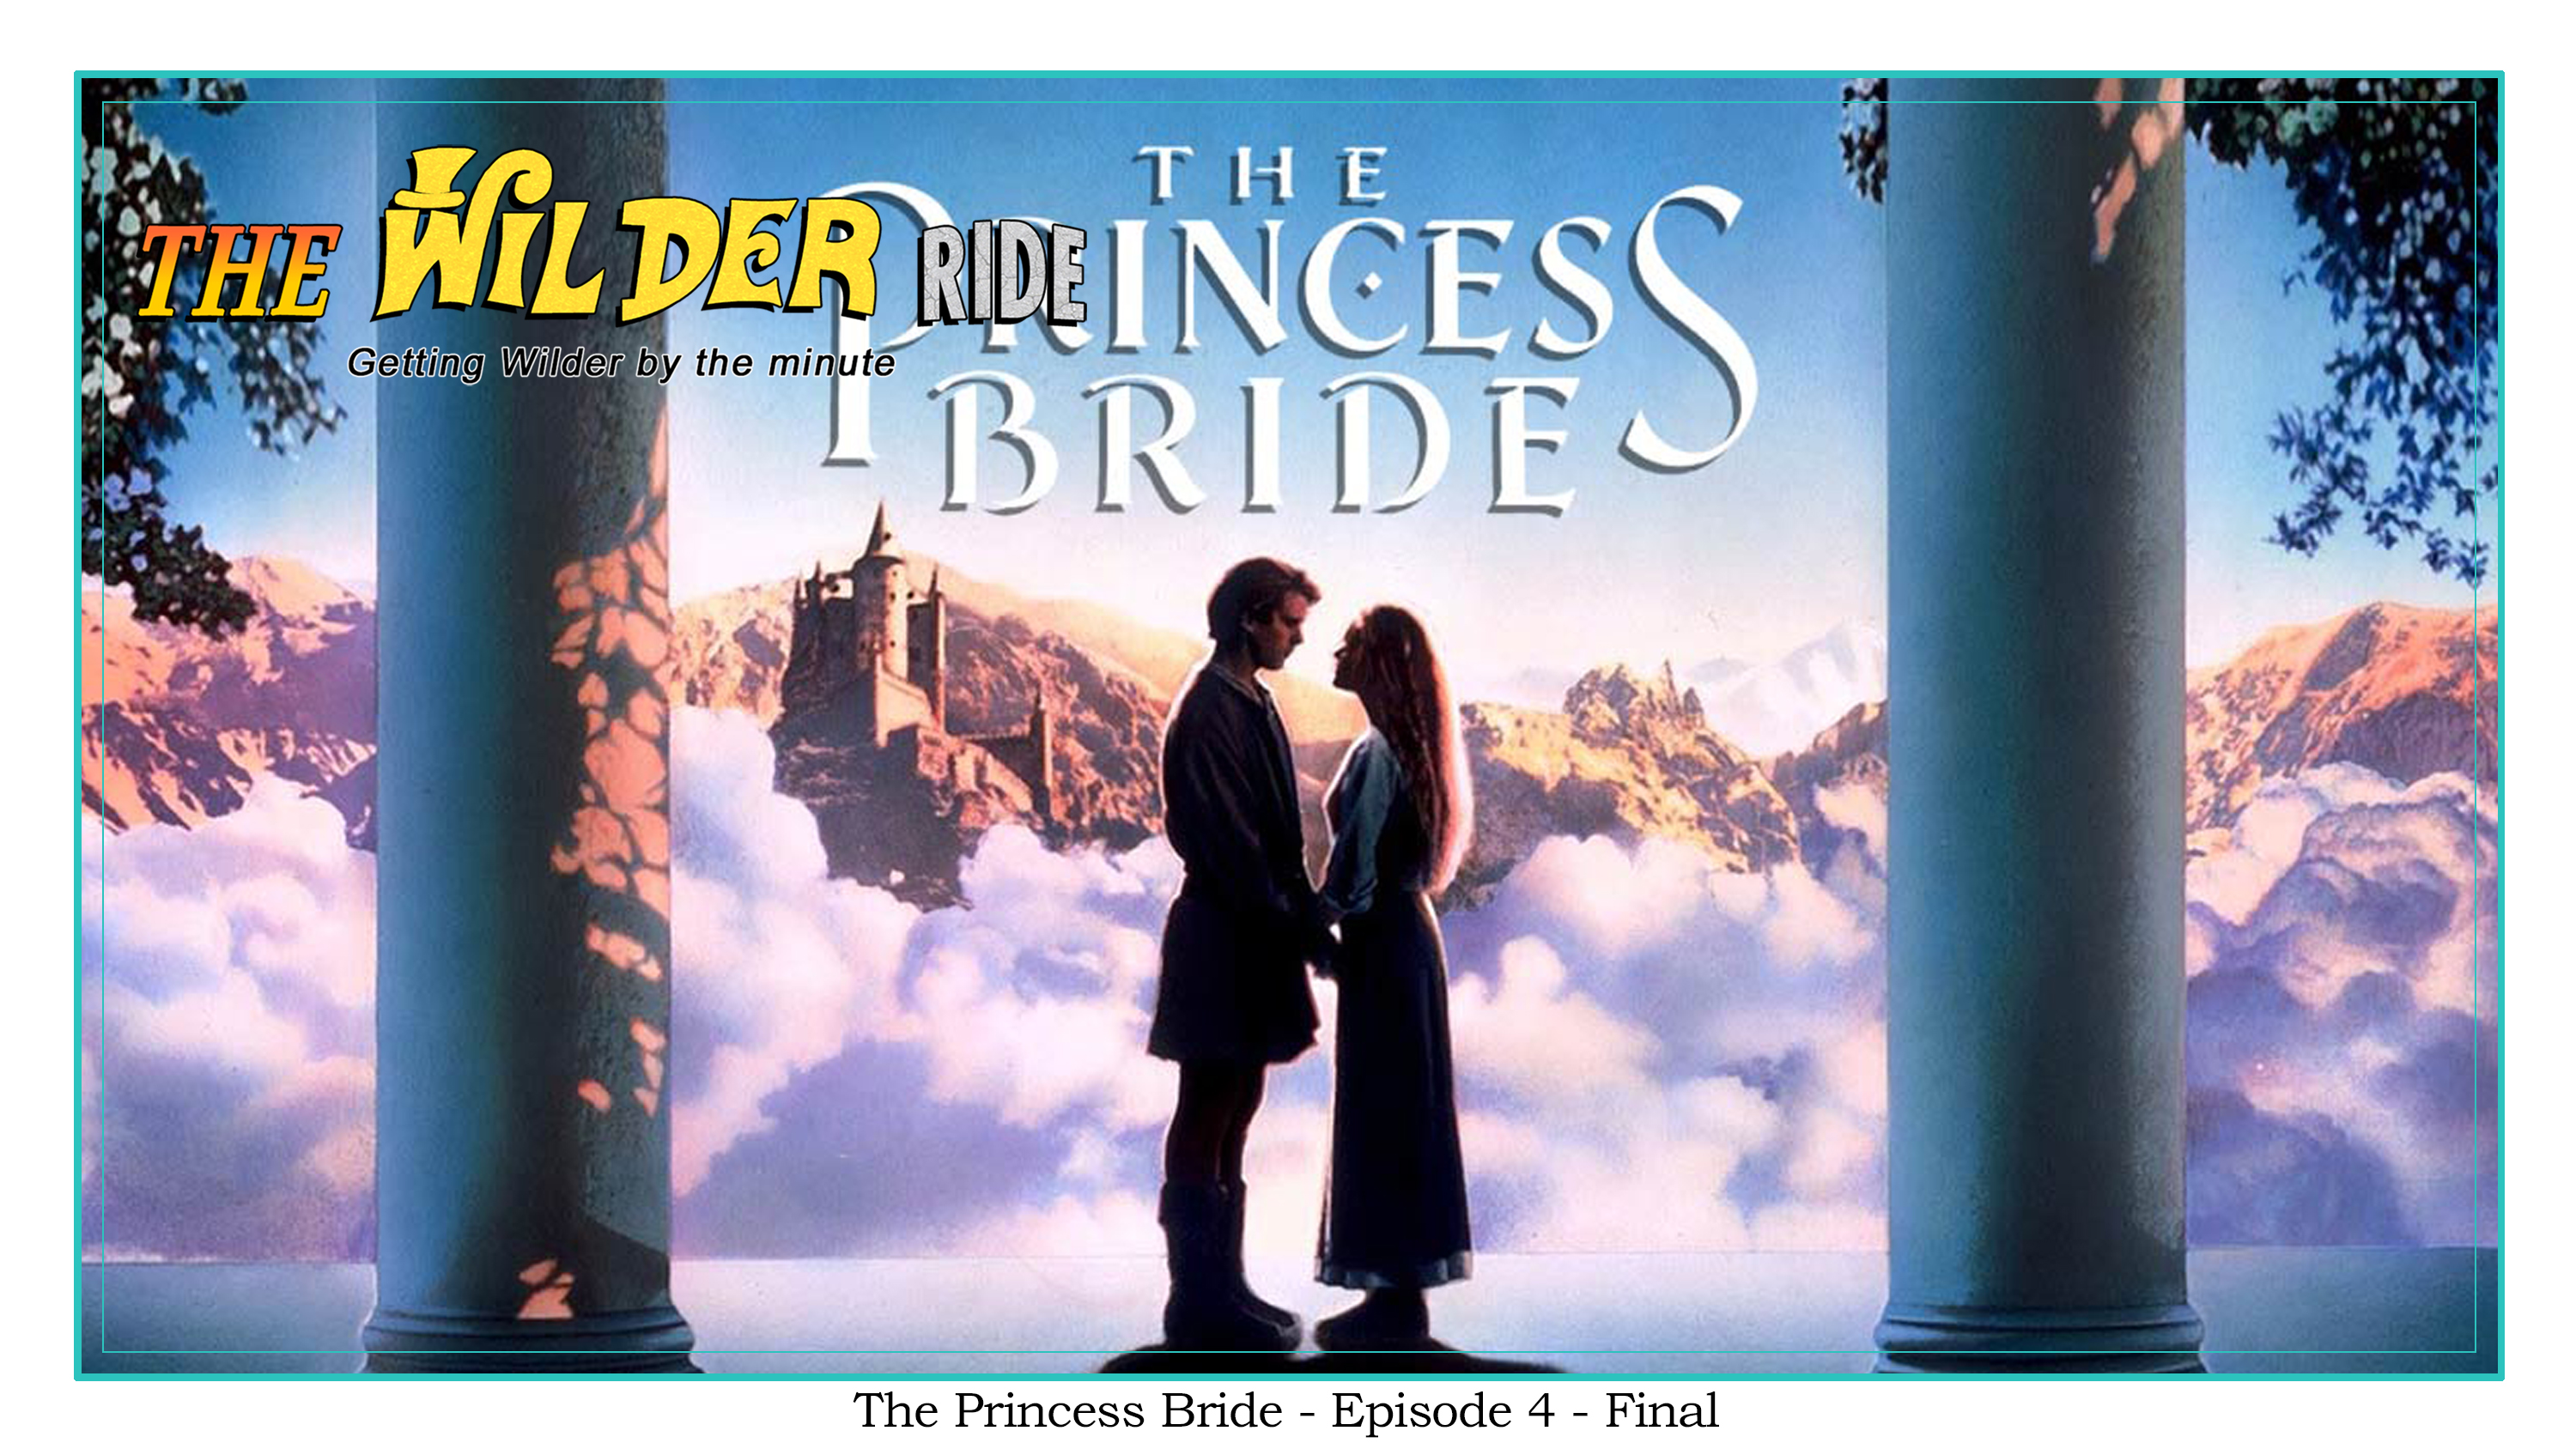 The Princess Bride - Episode 4 - Final